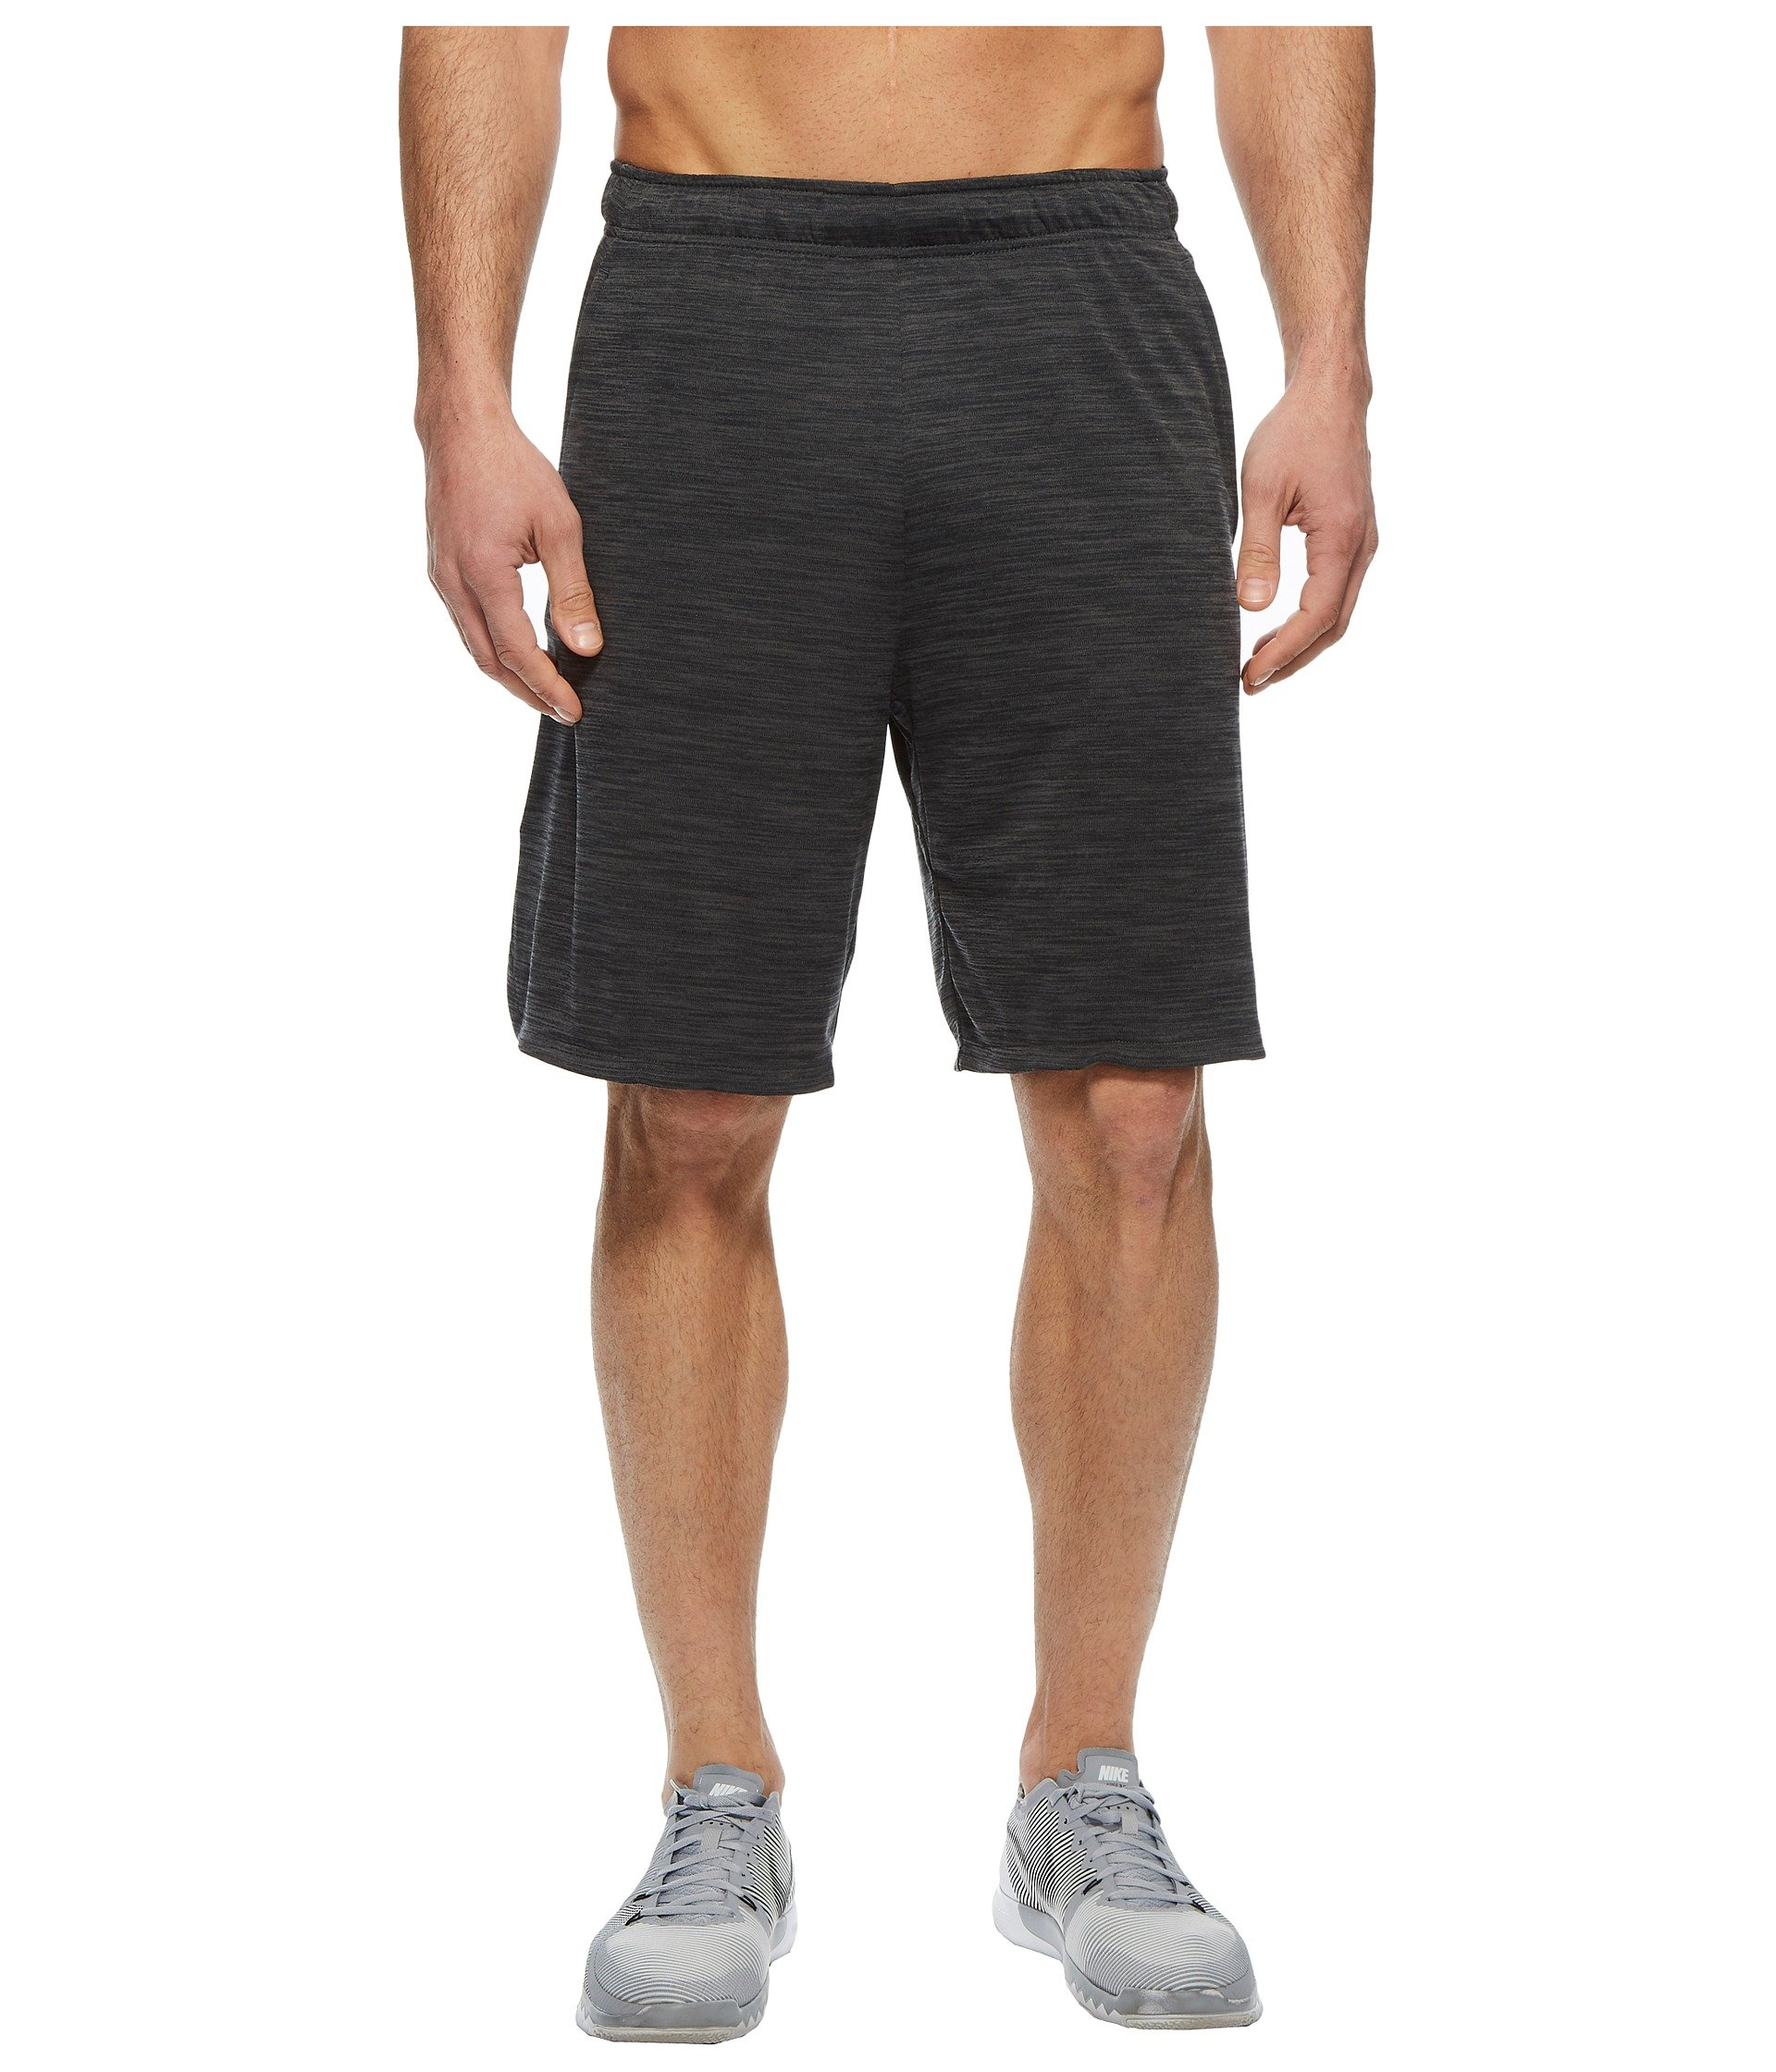 09c81c7f6 Men's Nike Shorts + FREE SHIPPING | Clothing | Zappos.com